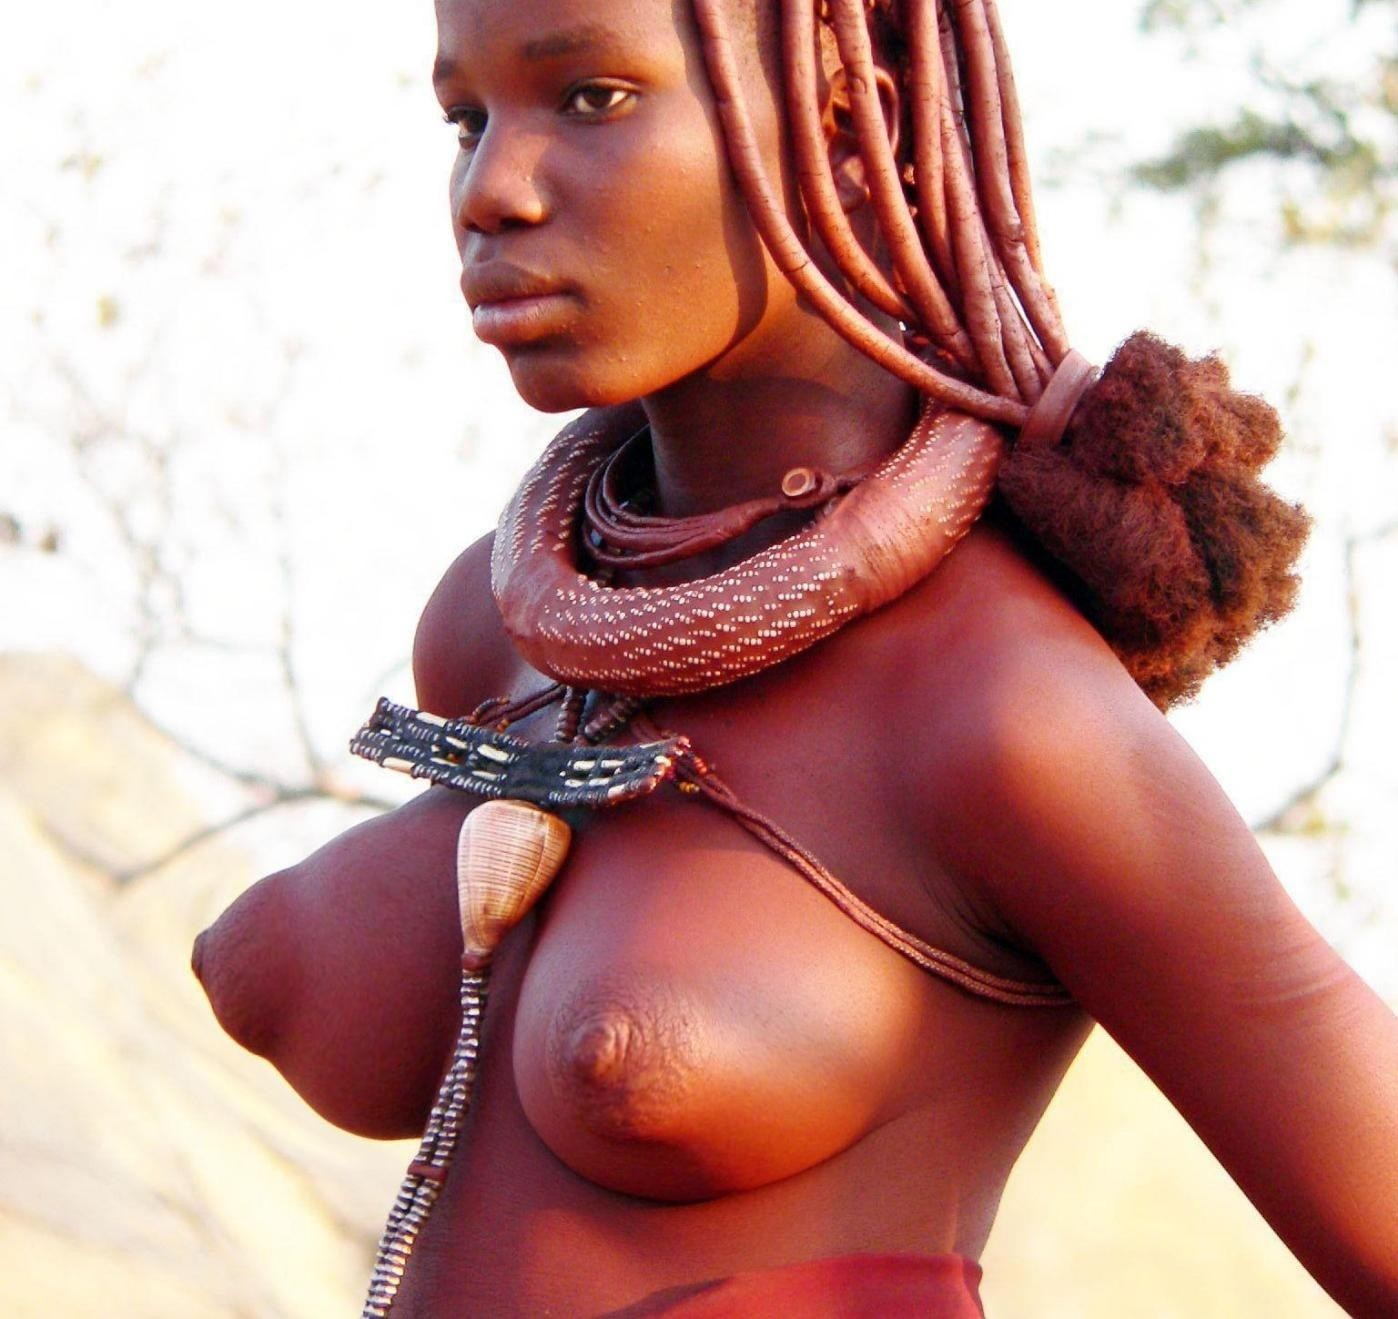 African tribal nude beautiful boobs images